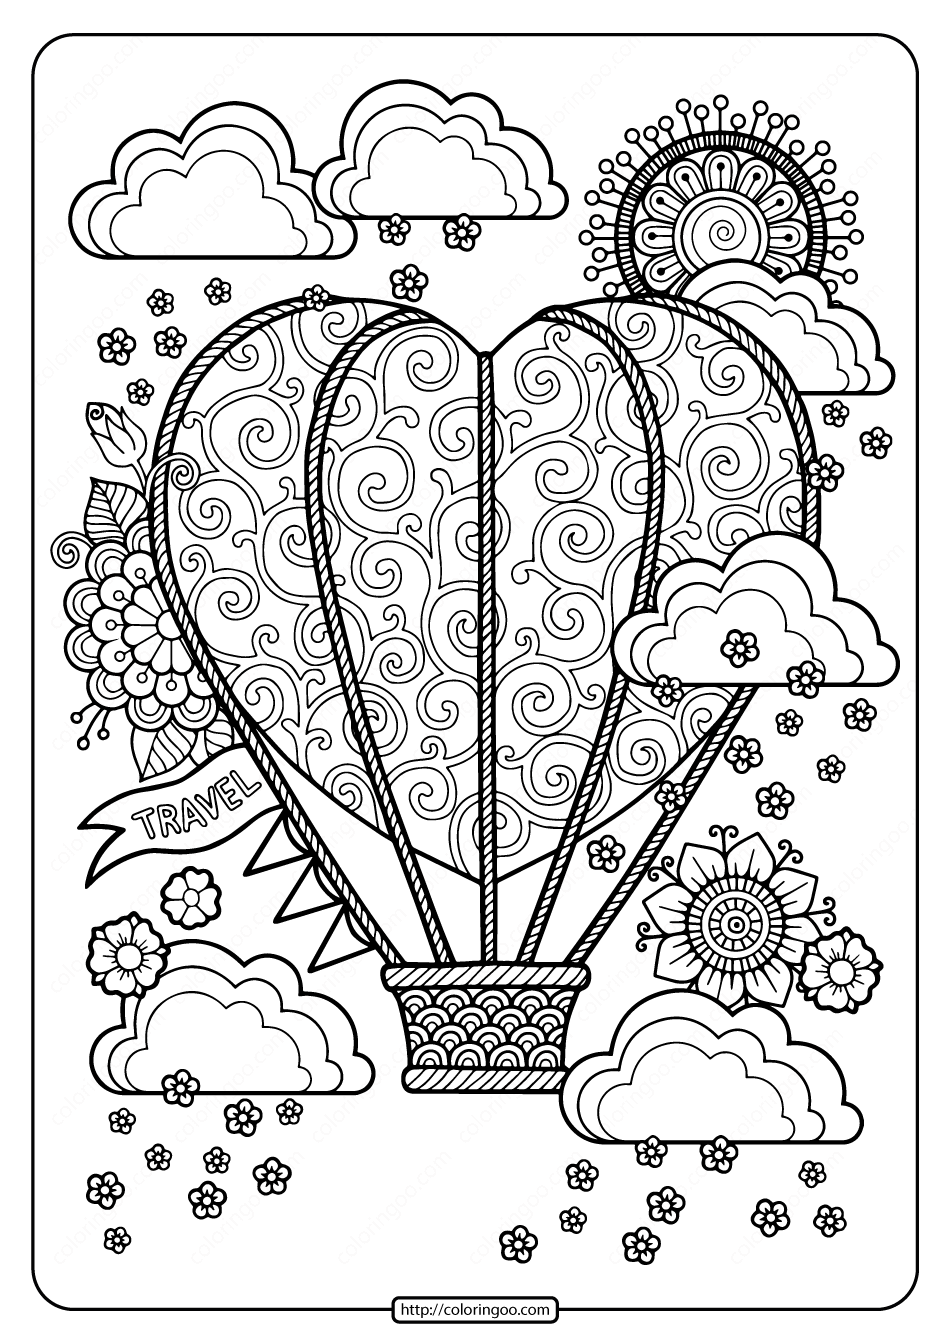 Free Heart Shaped Hot Air Balloon Pdf Coloring Page